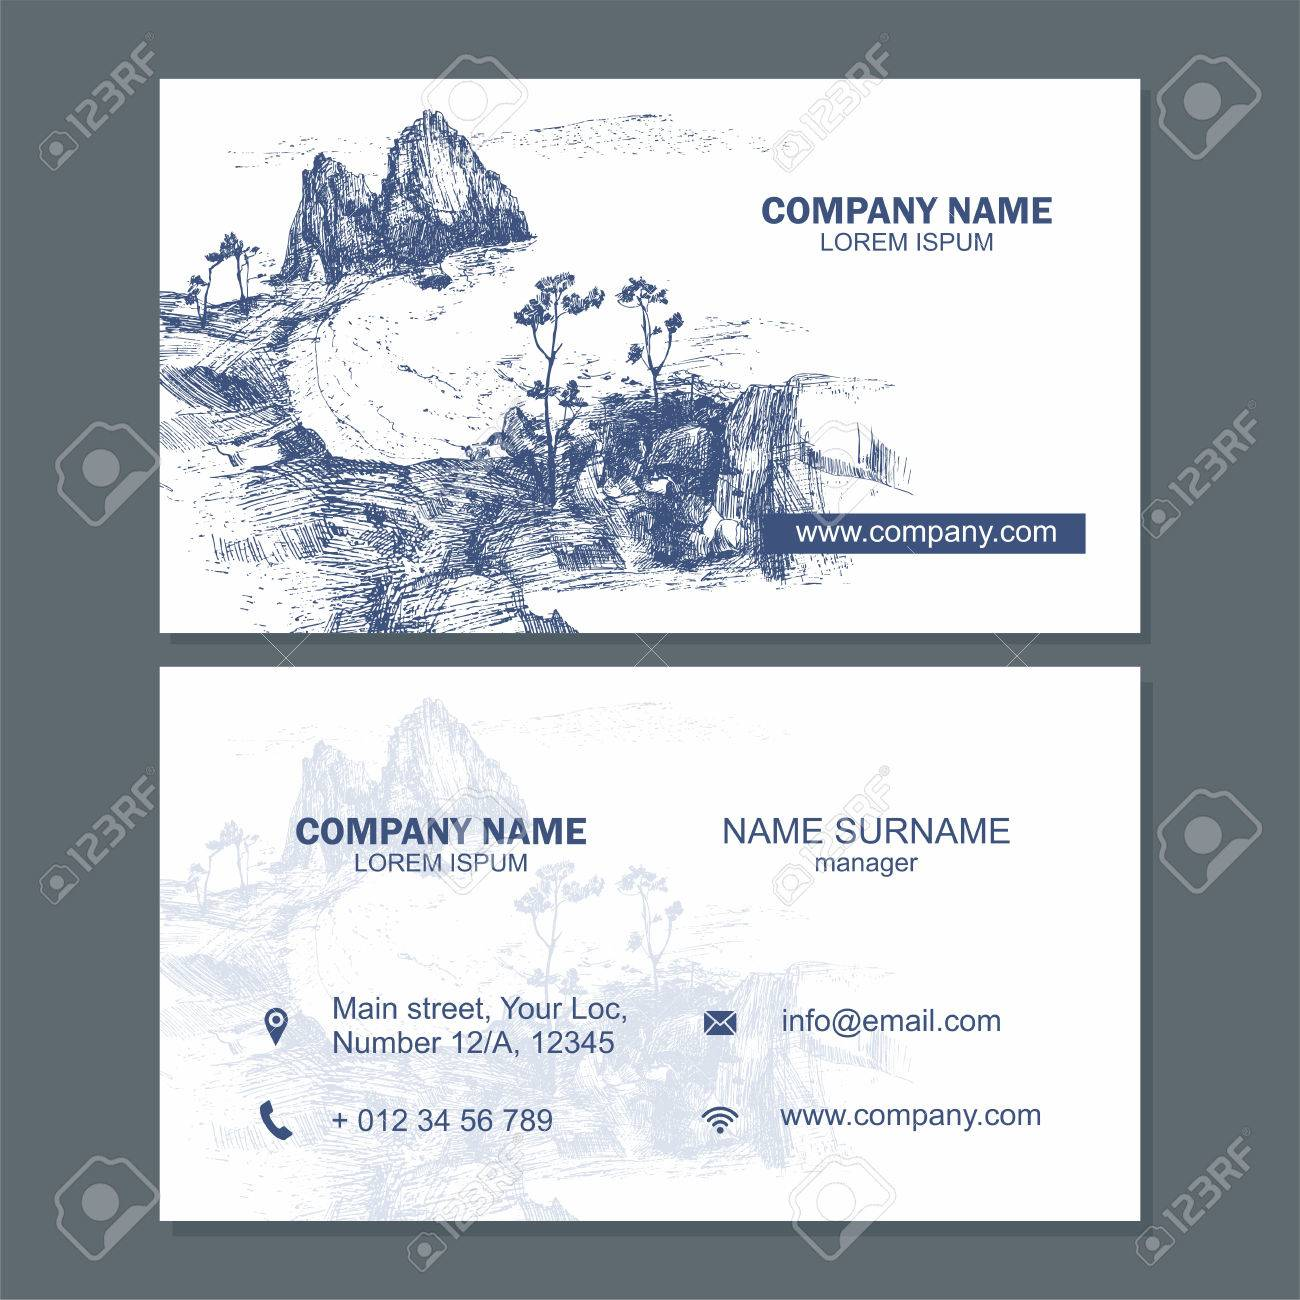 Al Capones Business Card - Best Business 2018